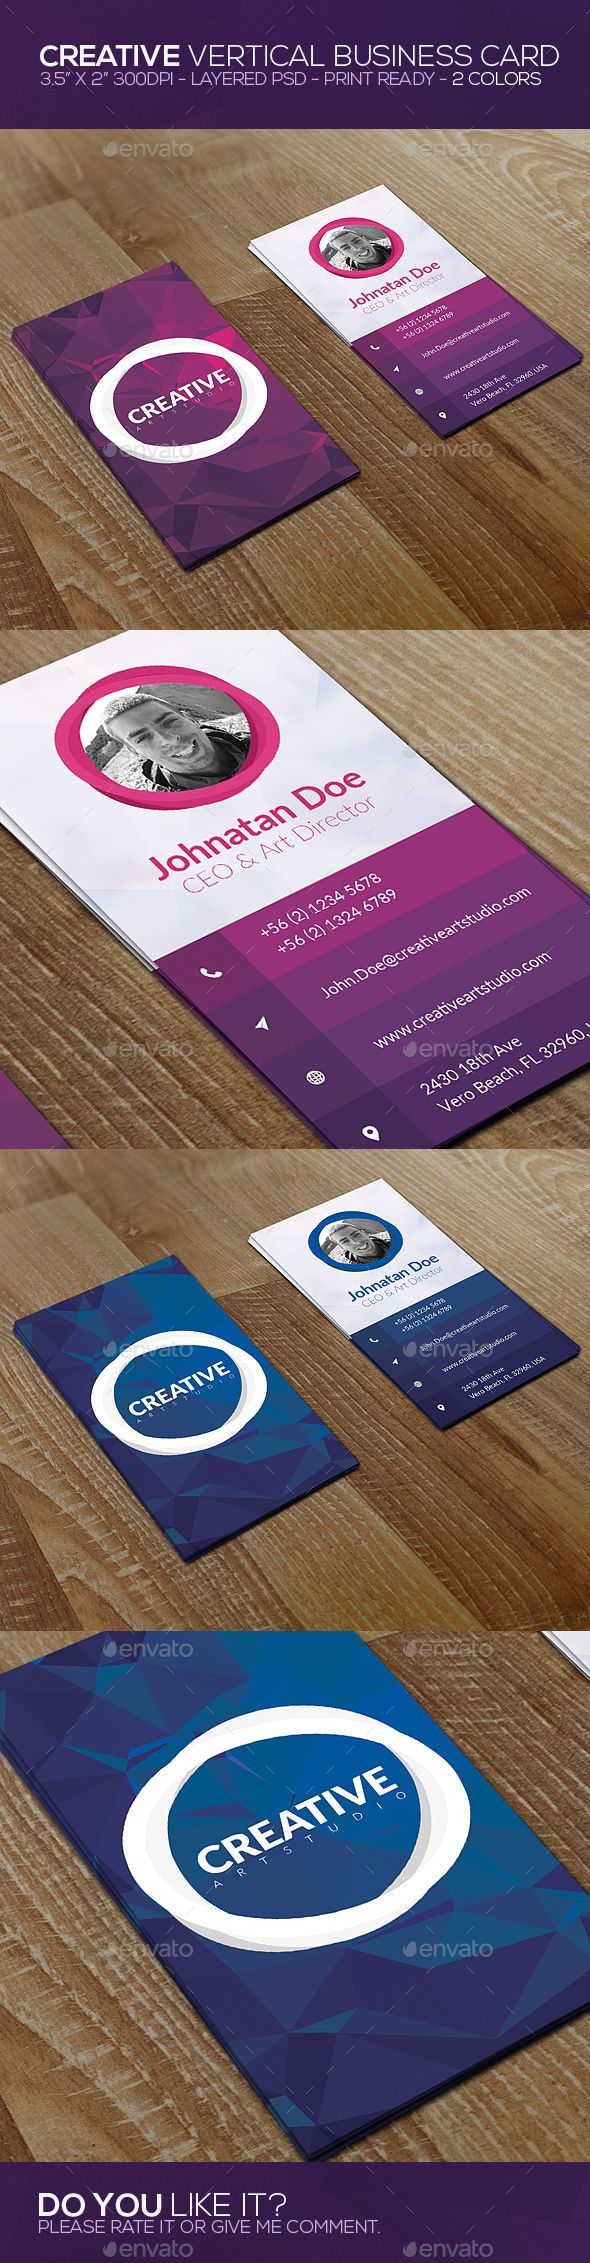 66 Best Bizz Card Images On Pinterest Business Cards Corporate